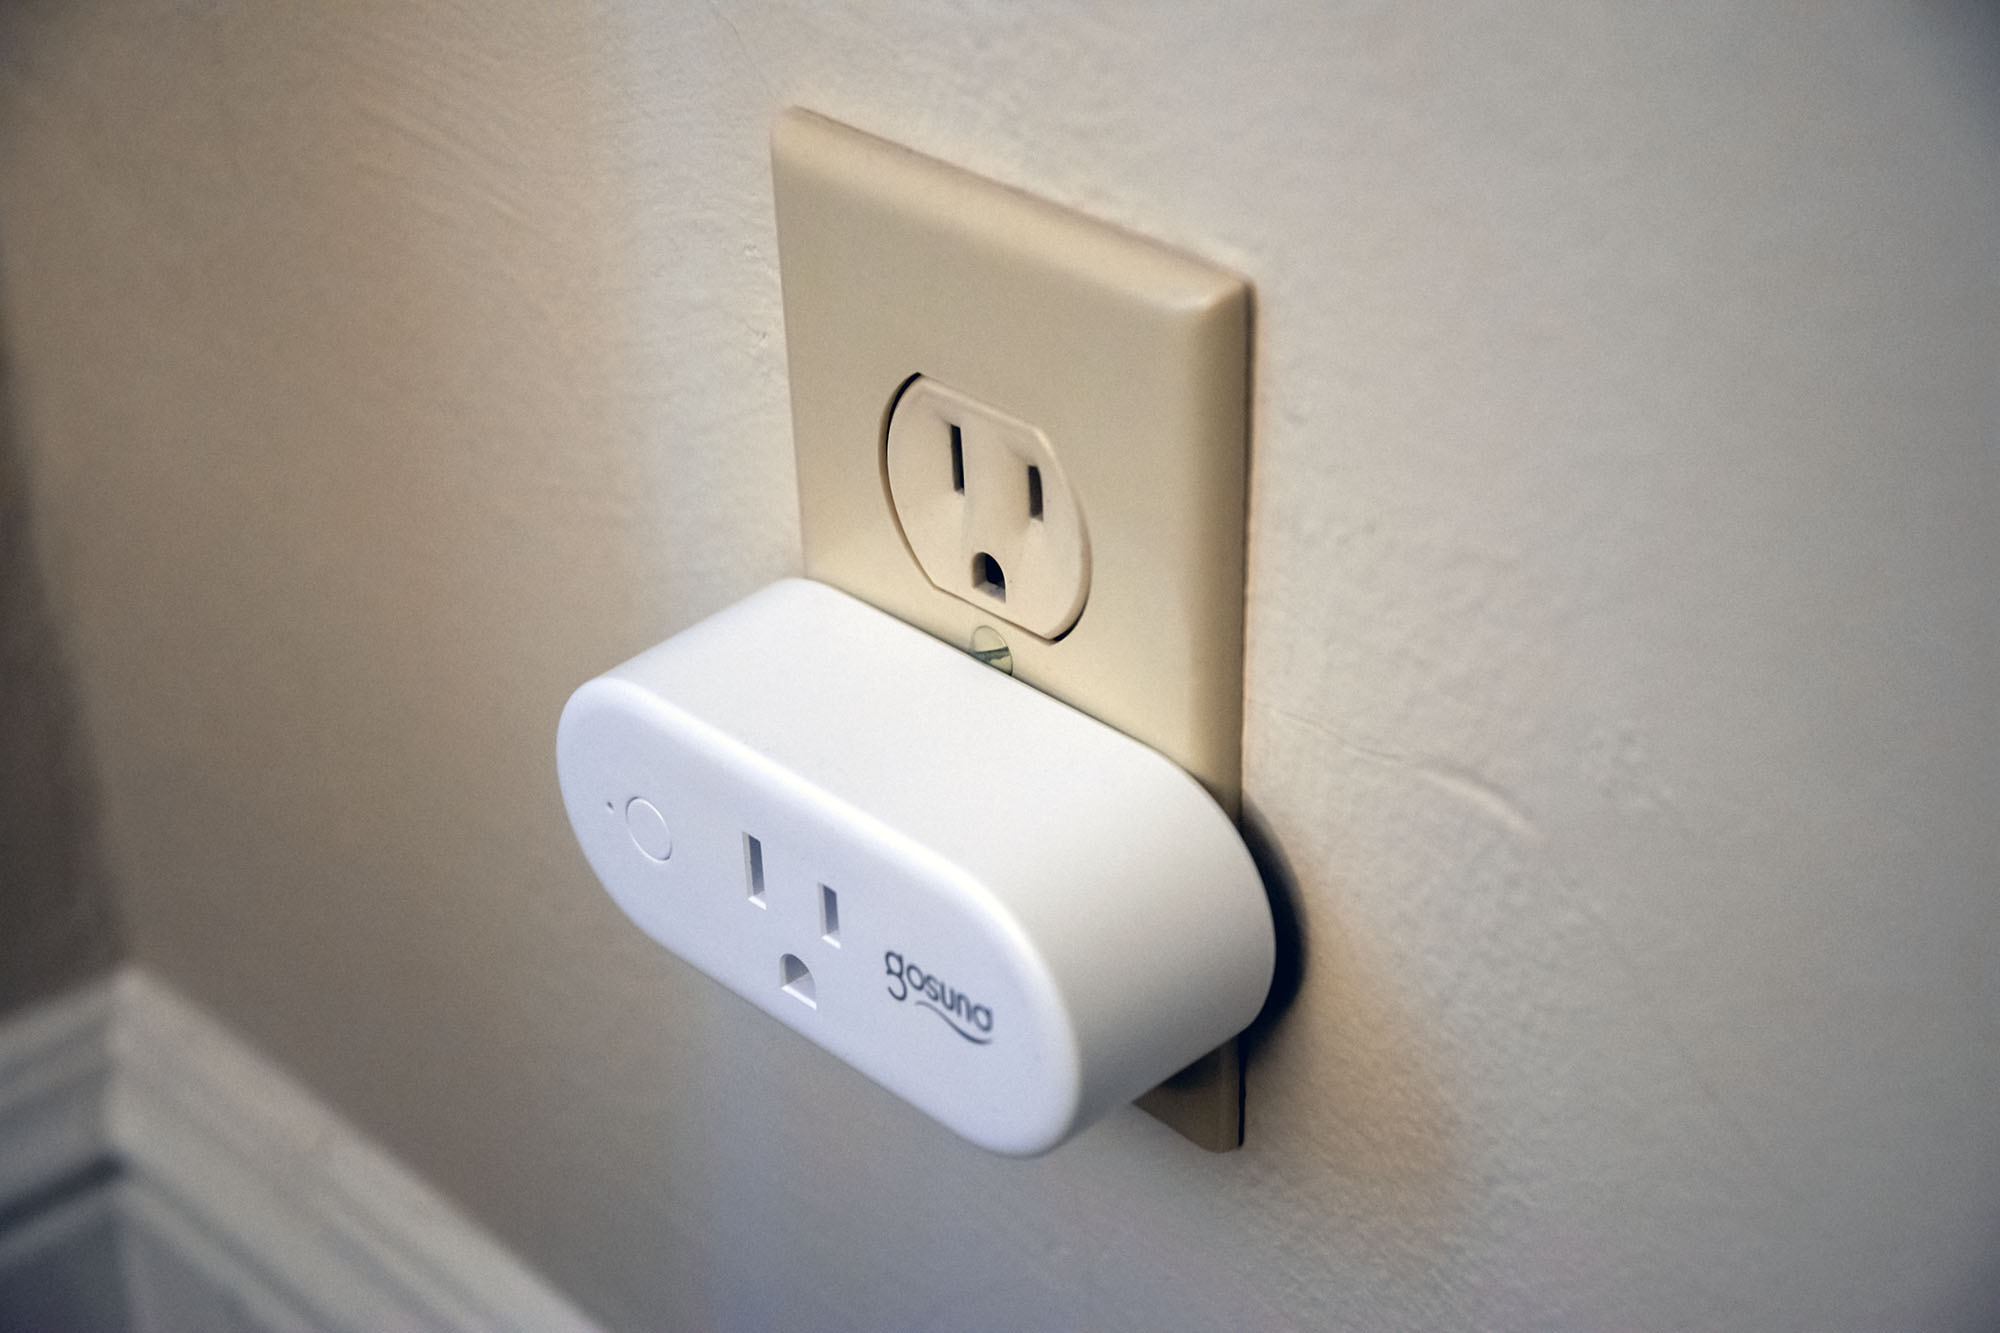 Gosund 16 Amp Smart Outlet Review  Smart Home On A Budget